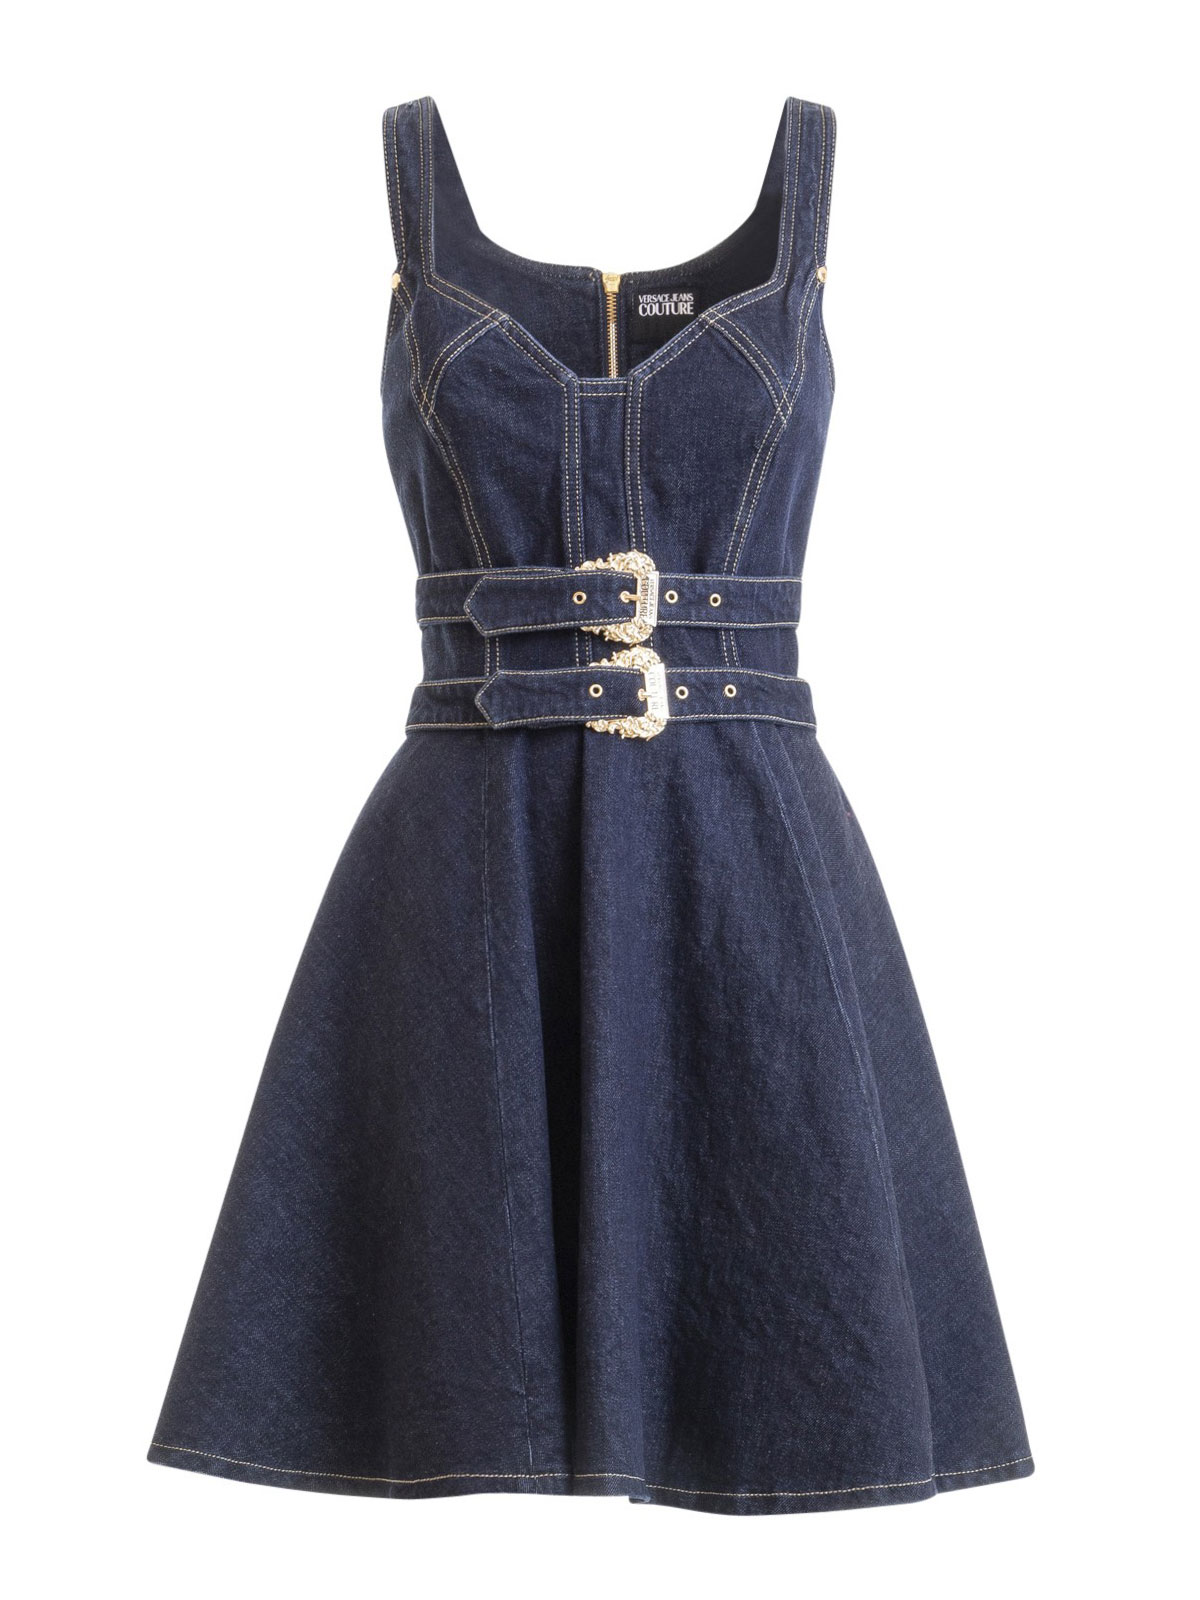 versace jeans couture - double belted denim dress - کوتاه